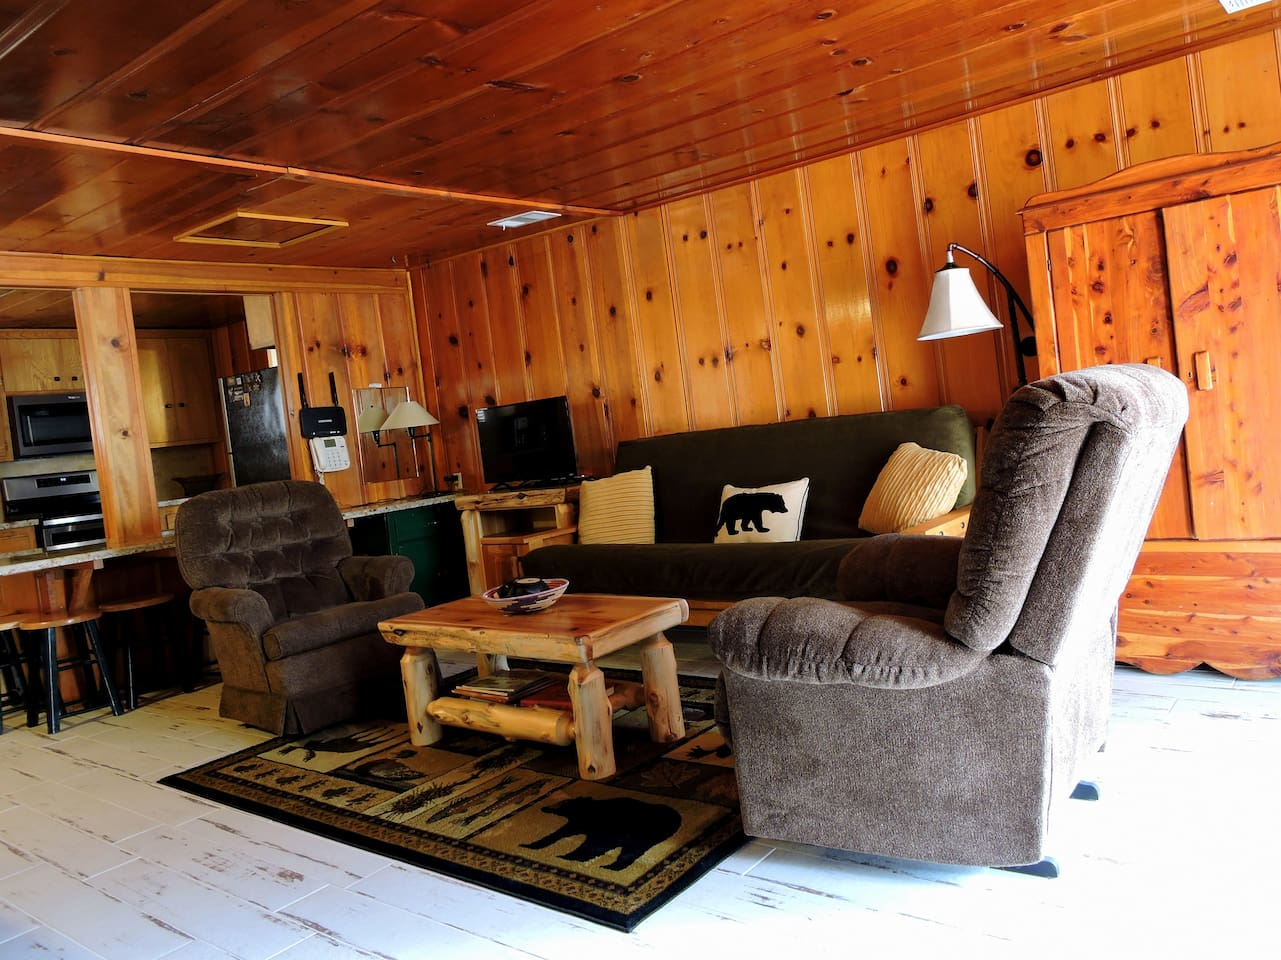 The cozy living room is off the kitchen and boasts a river rock fireplace for chilly mountain nights.